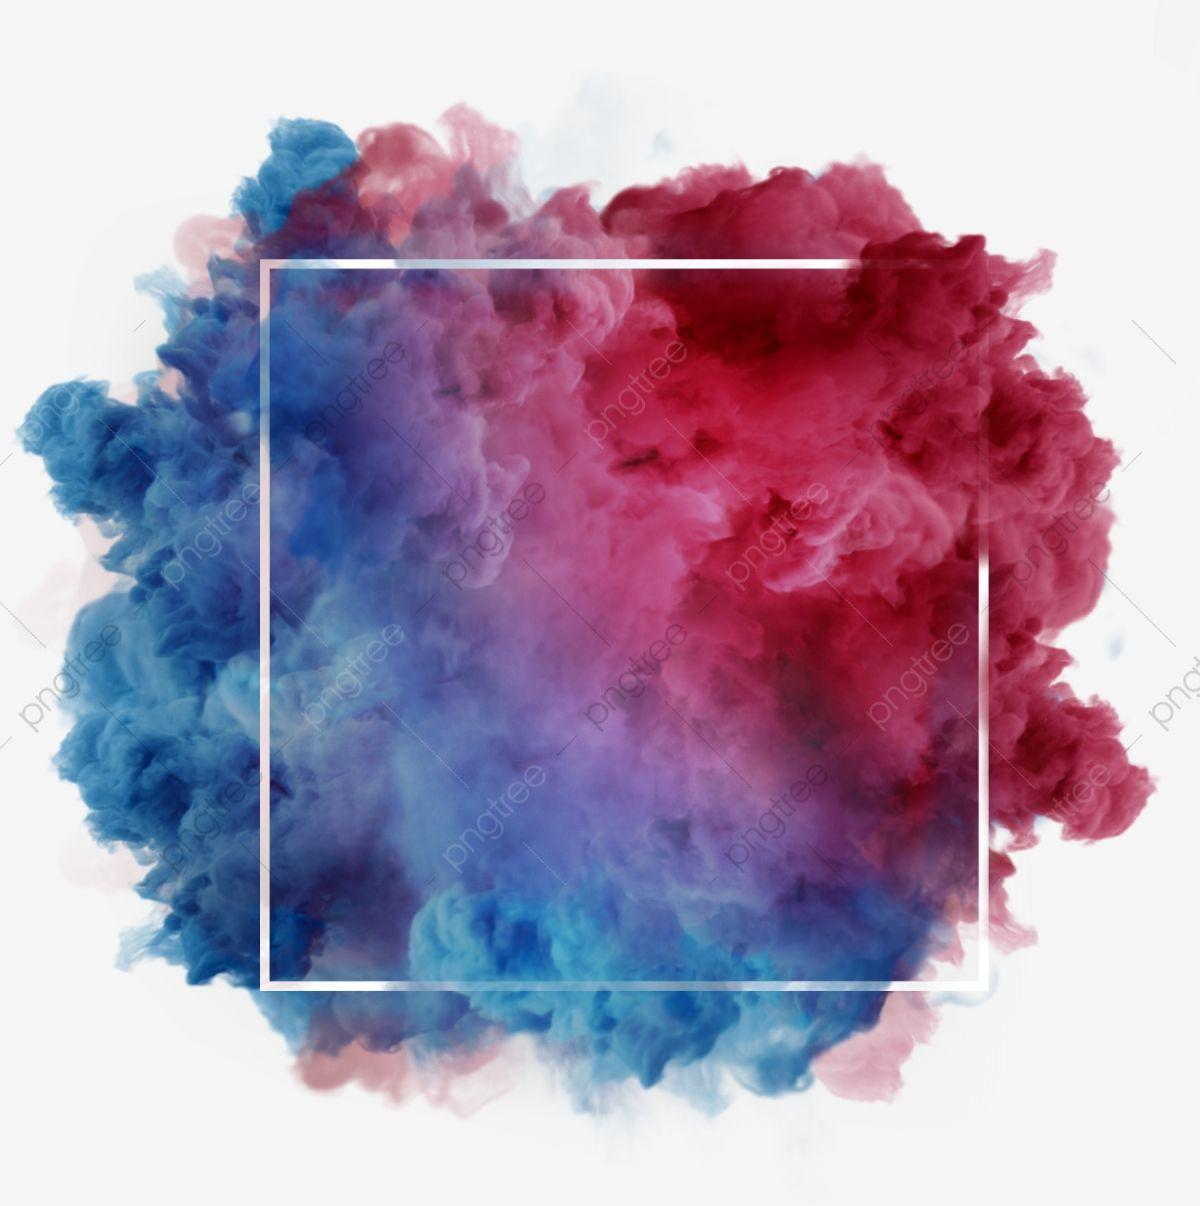 Red Blue Smoke Abstract Frame Art Watercolor Paint Electric Blue Meteorological Phenomenon Png Transparent Clipart Image And Psd File For Free Download Paint Splash Background Paint Splash Graphic Design Background Templates